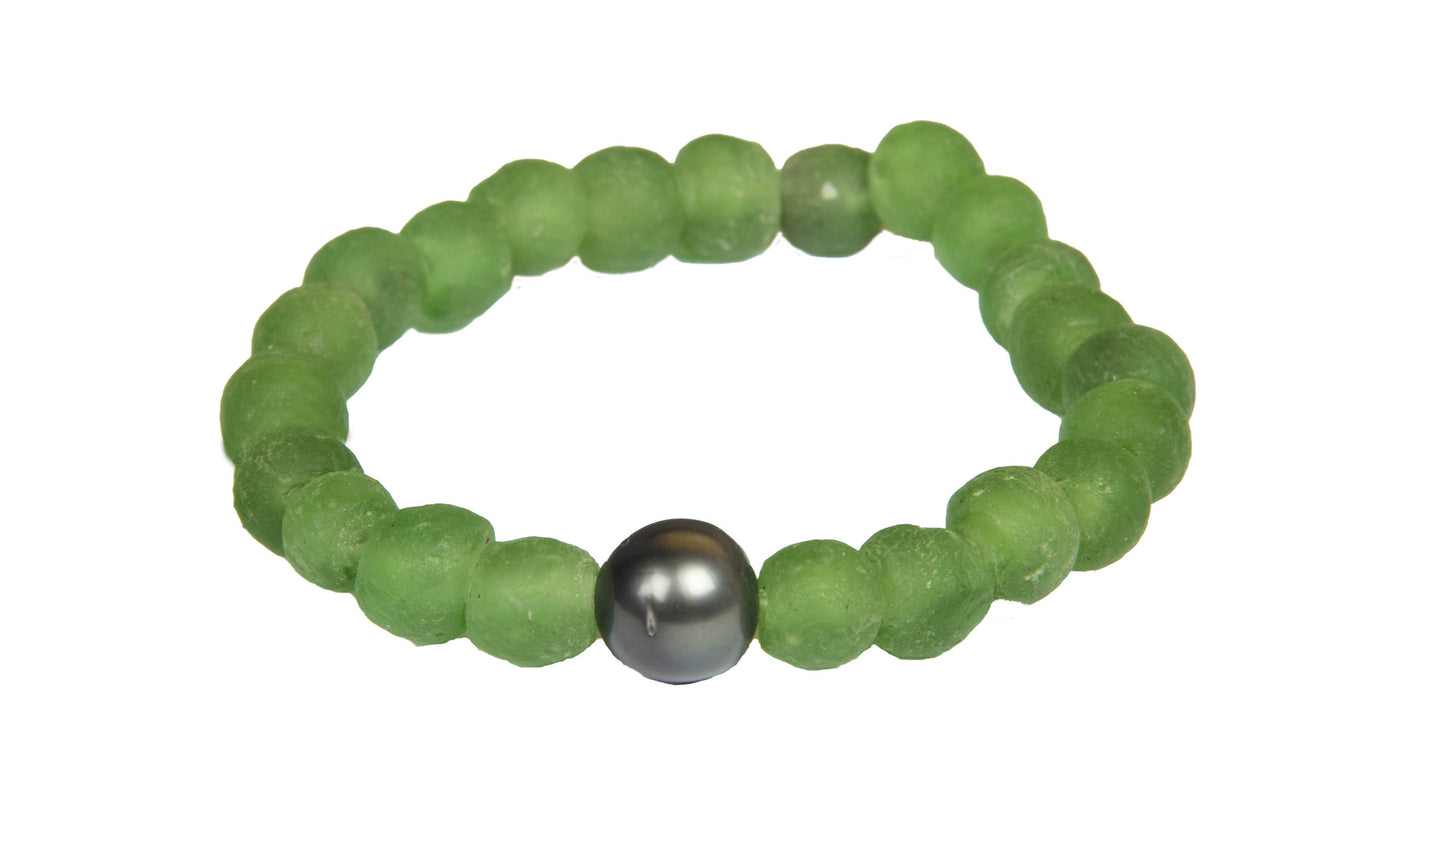 Green Aquatic Sea Glass Bracelet - Hottest Designer Pearl and Leather Jewelry | VINCENT PEACH